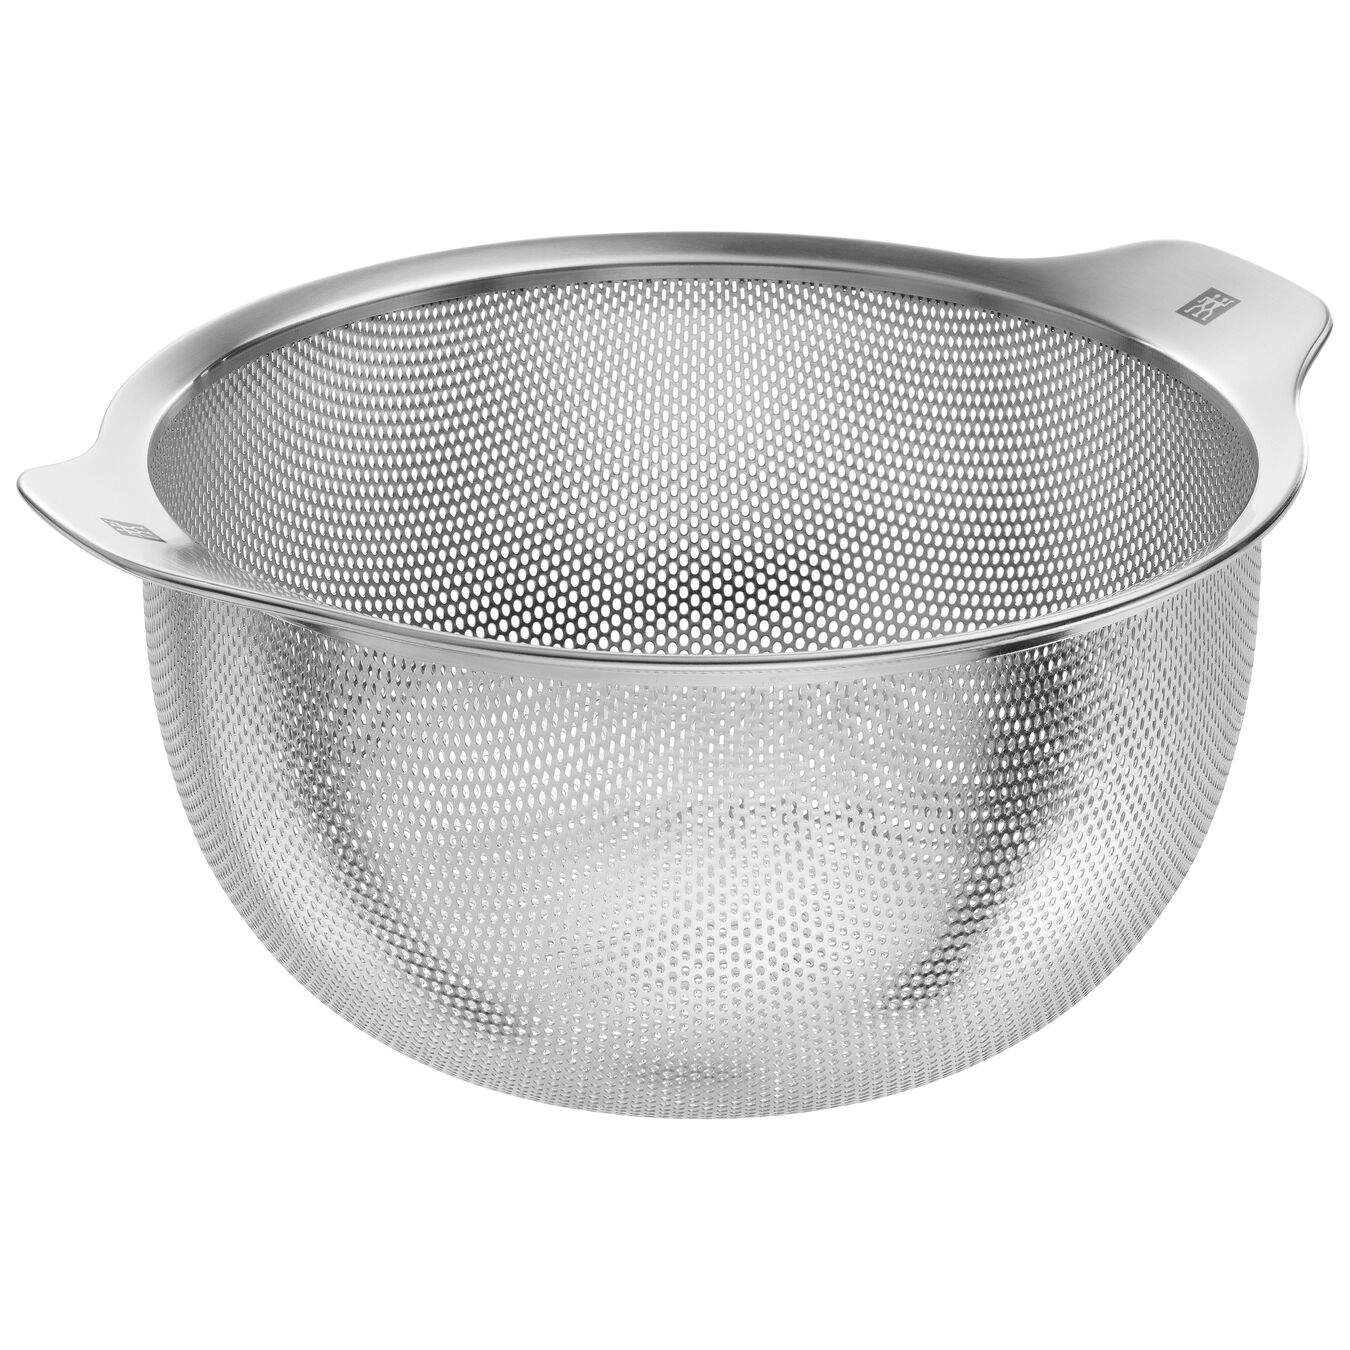 9.5-inch Colander, 18/10 Stainless Steel ,,large 1